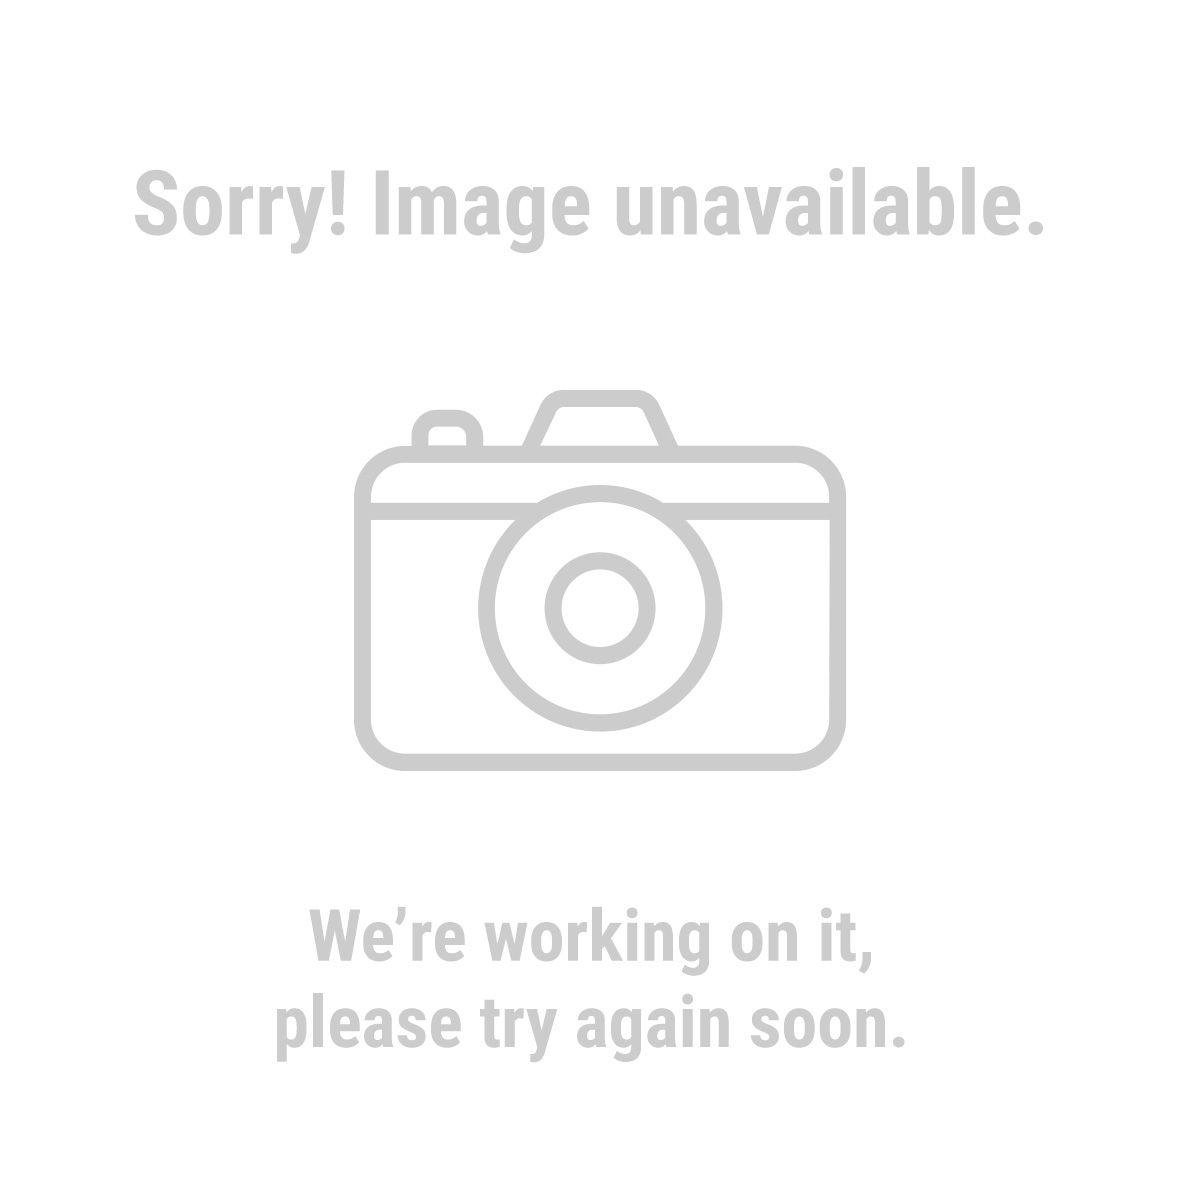 Chicago Electric Welding 98233 240 Volt Inverter Arc/TIG Welder with Digital Readout